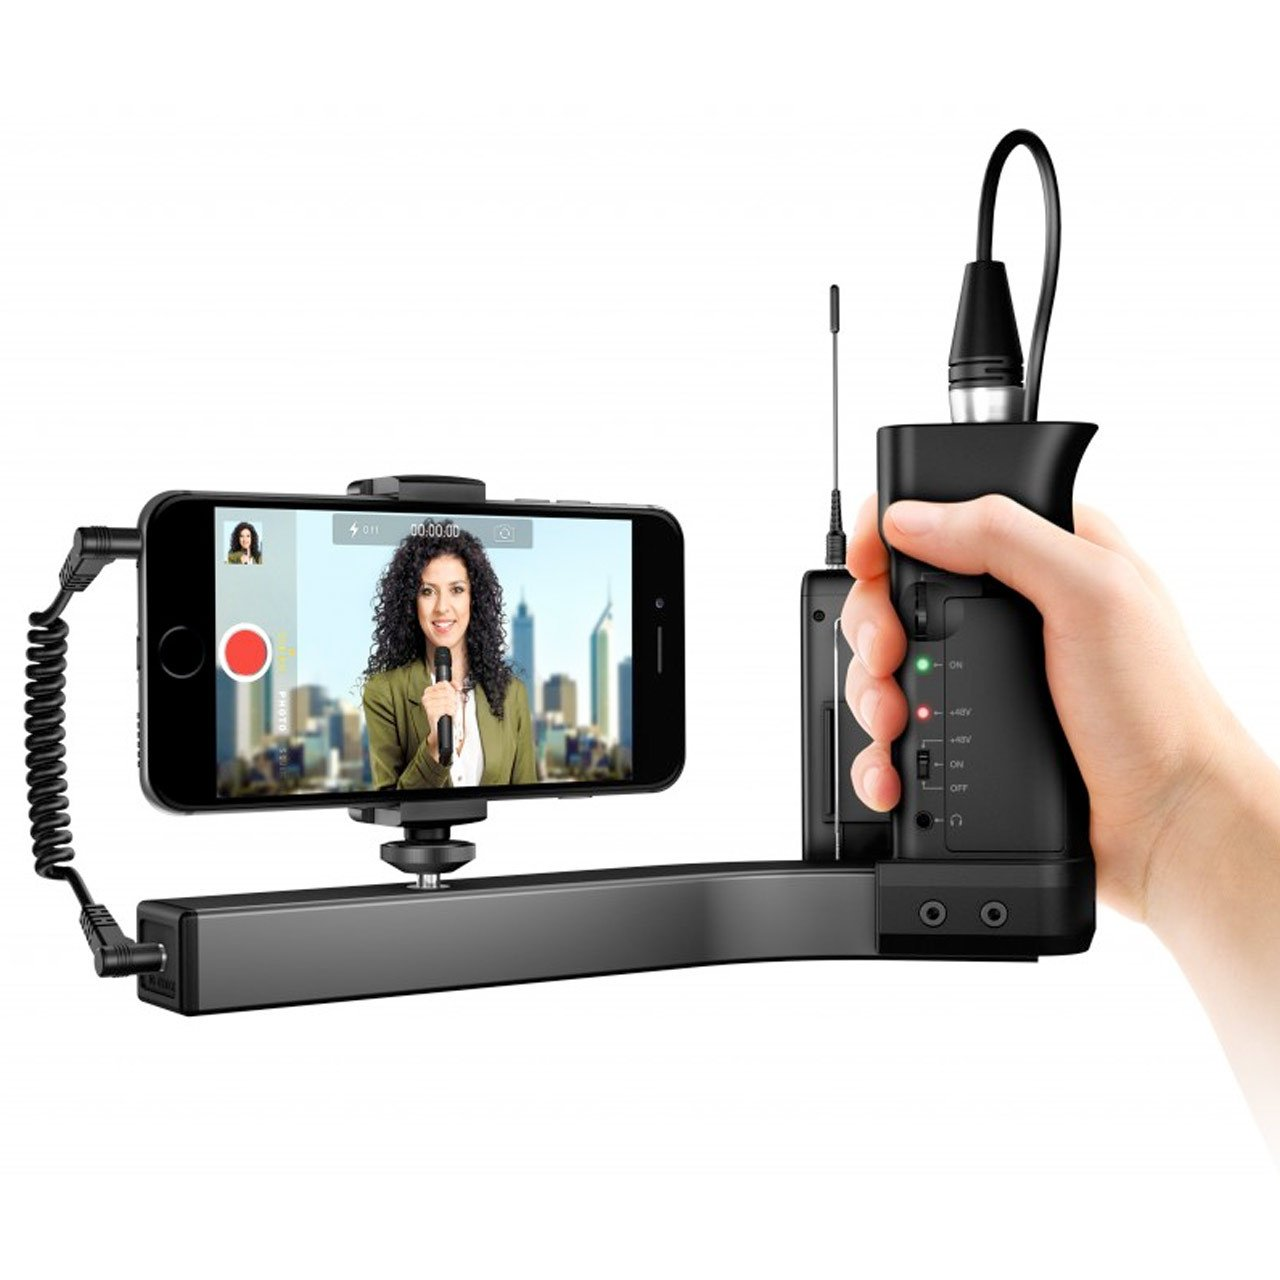 Microphone Accessories - IK Multimedia IKlip A/V Smartphone Broadcast Mount